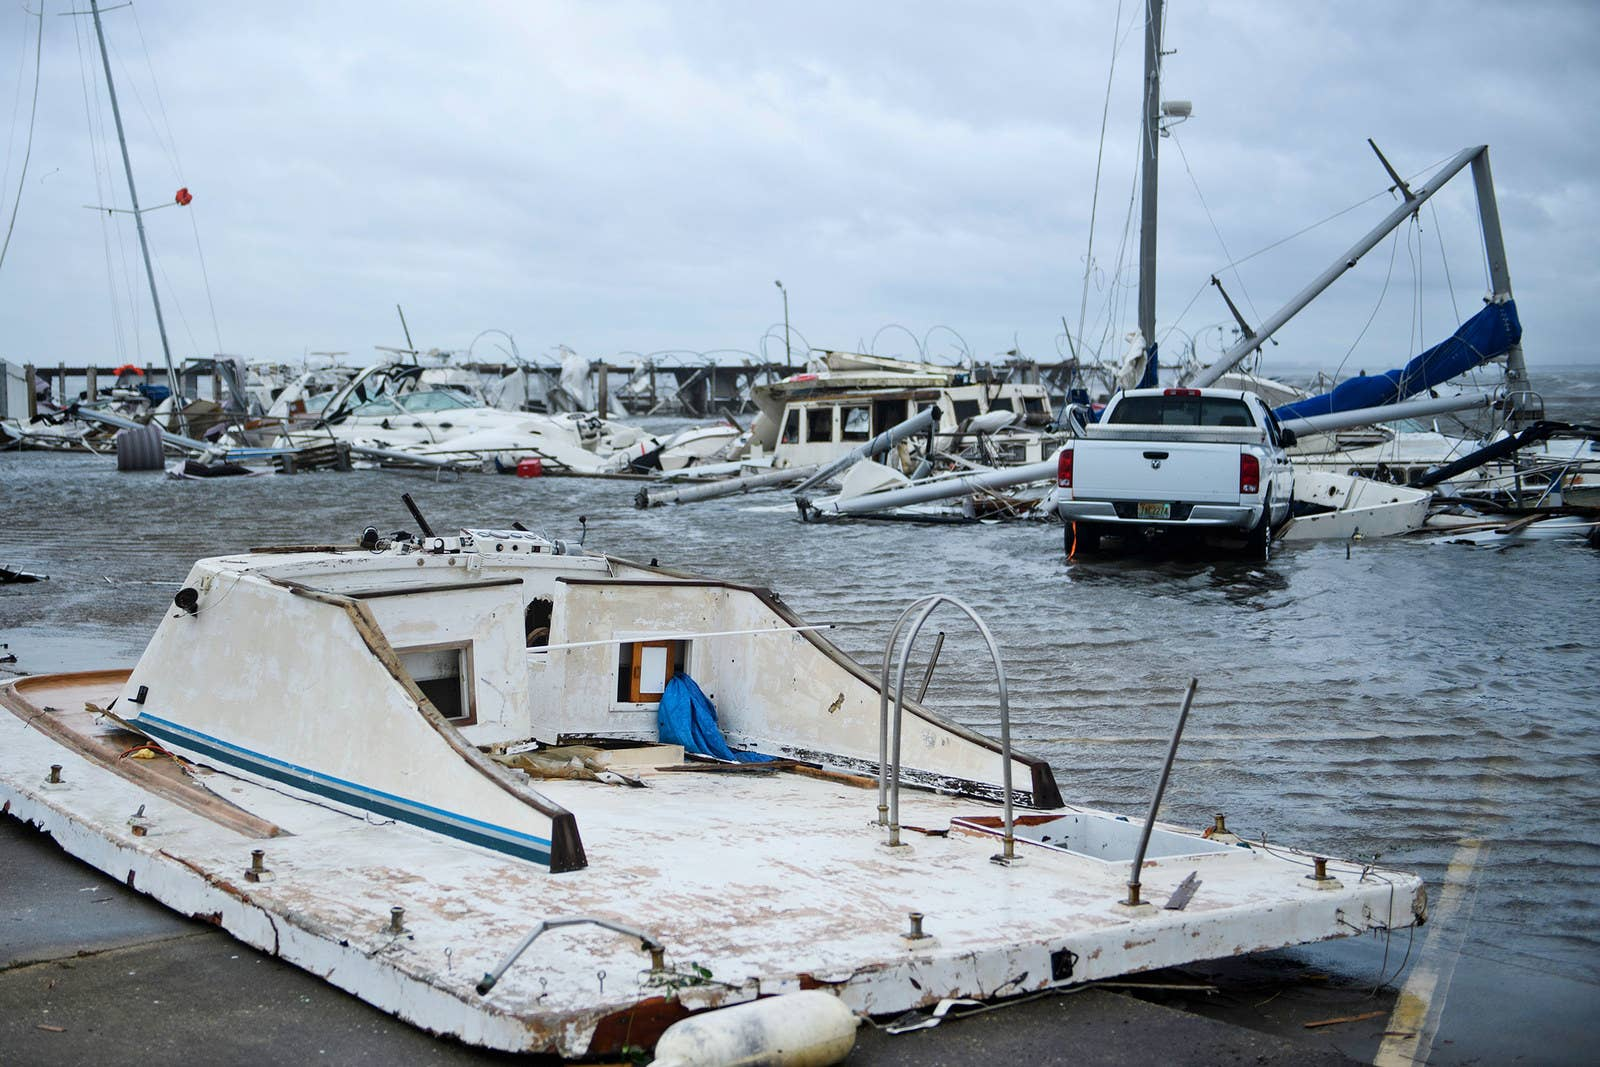 Damaged boats and a truck are seen in a marina in Panama City, Florida.